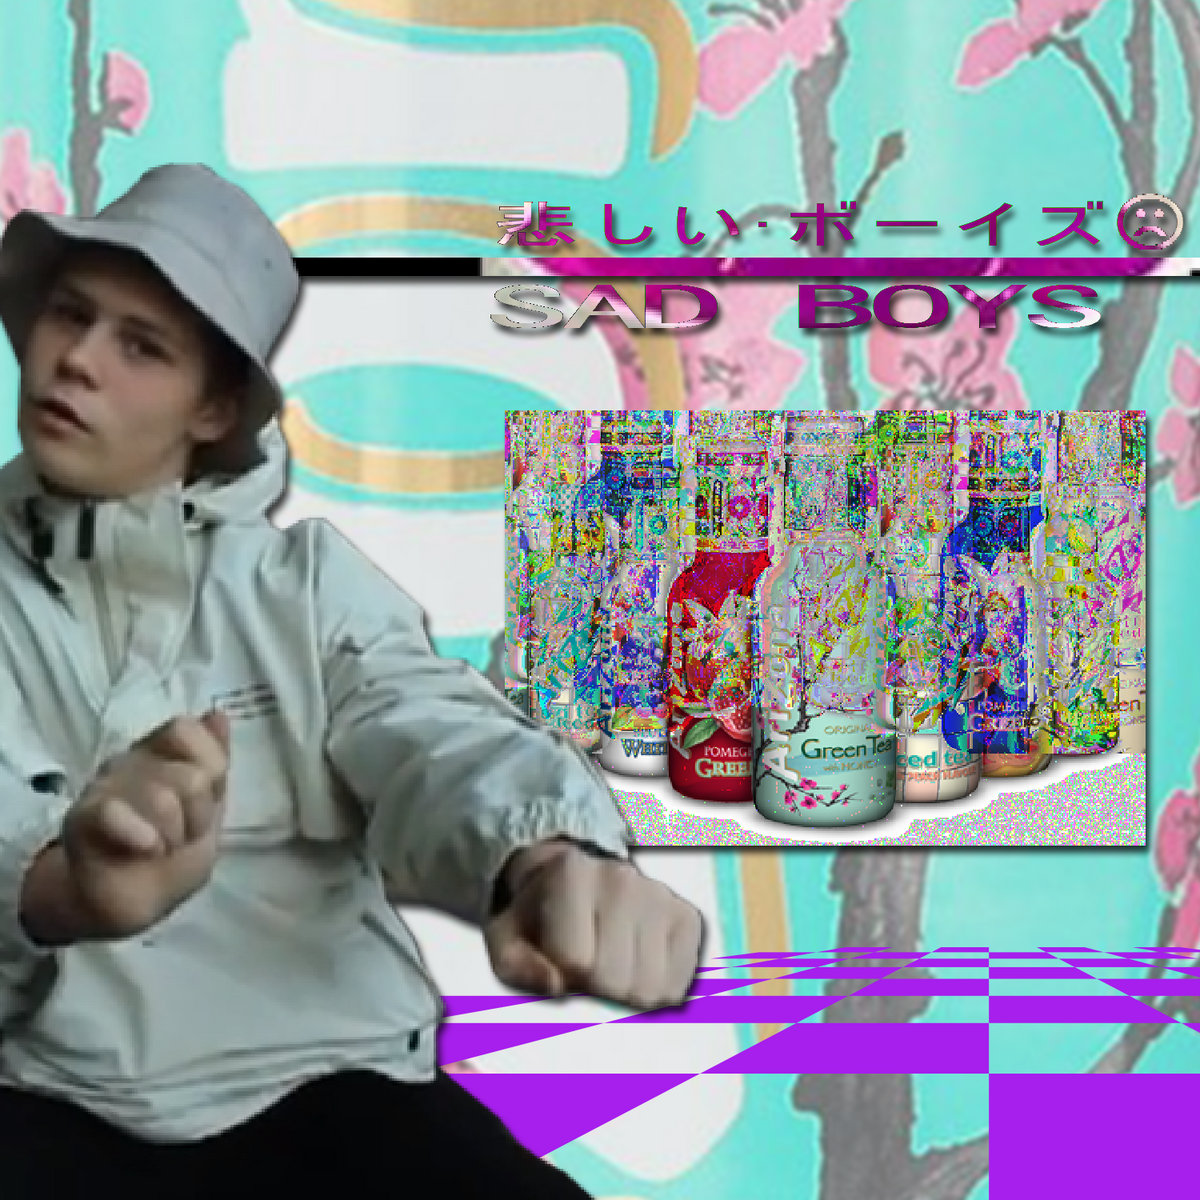 yung lean on the cover bigcbit com agen resmi vimax